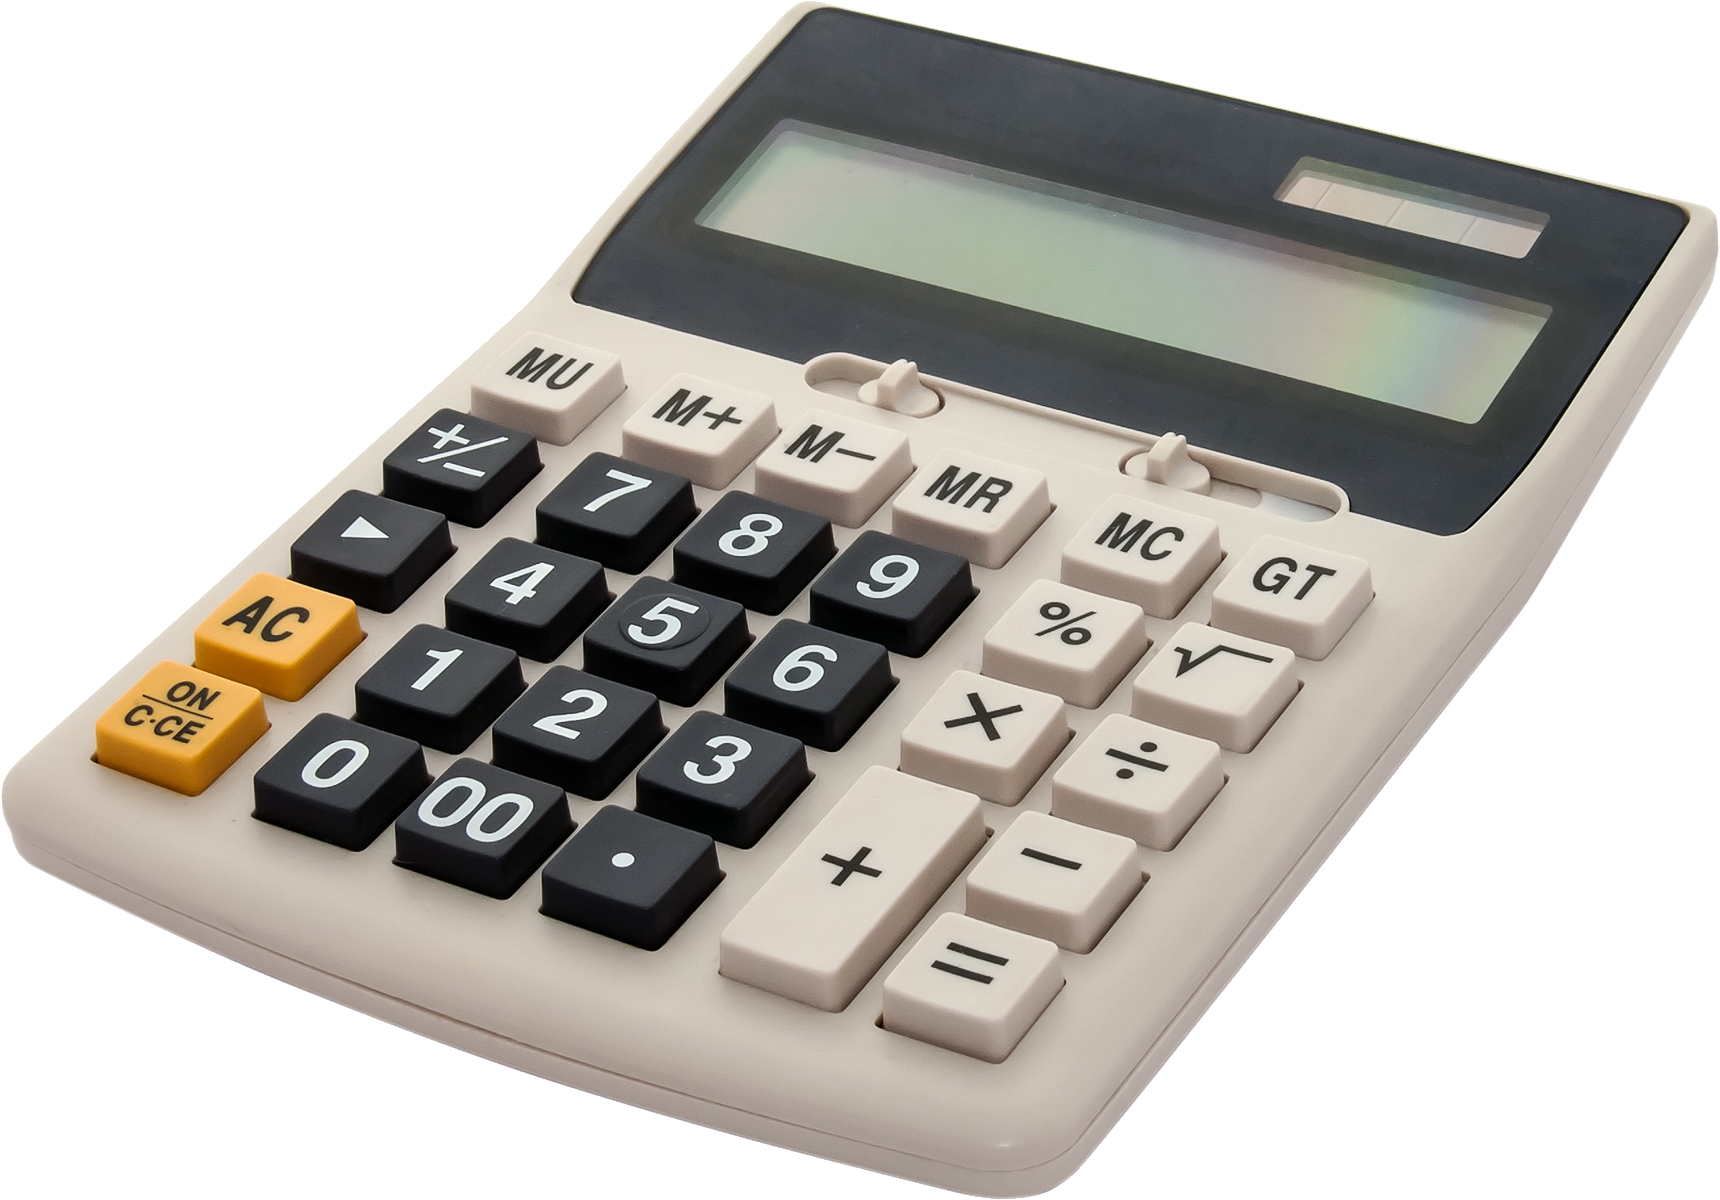 clipart freeuse Calculator White Background Images